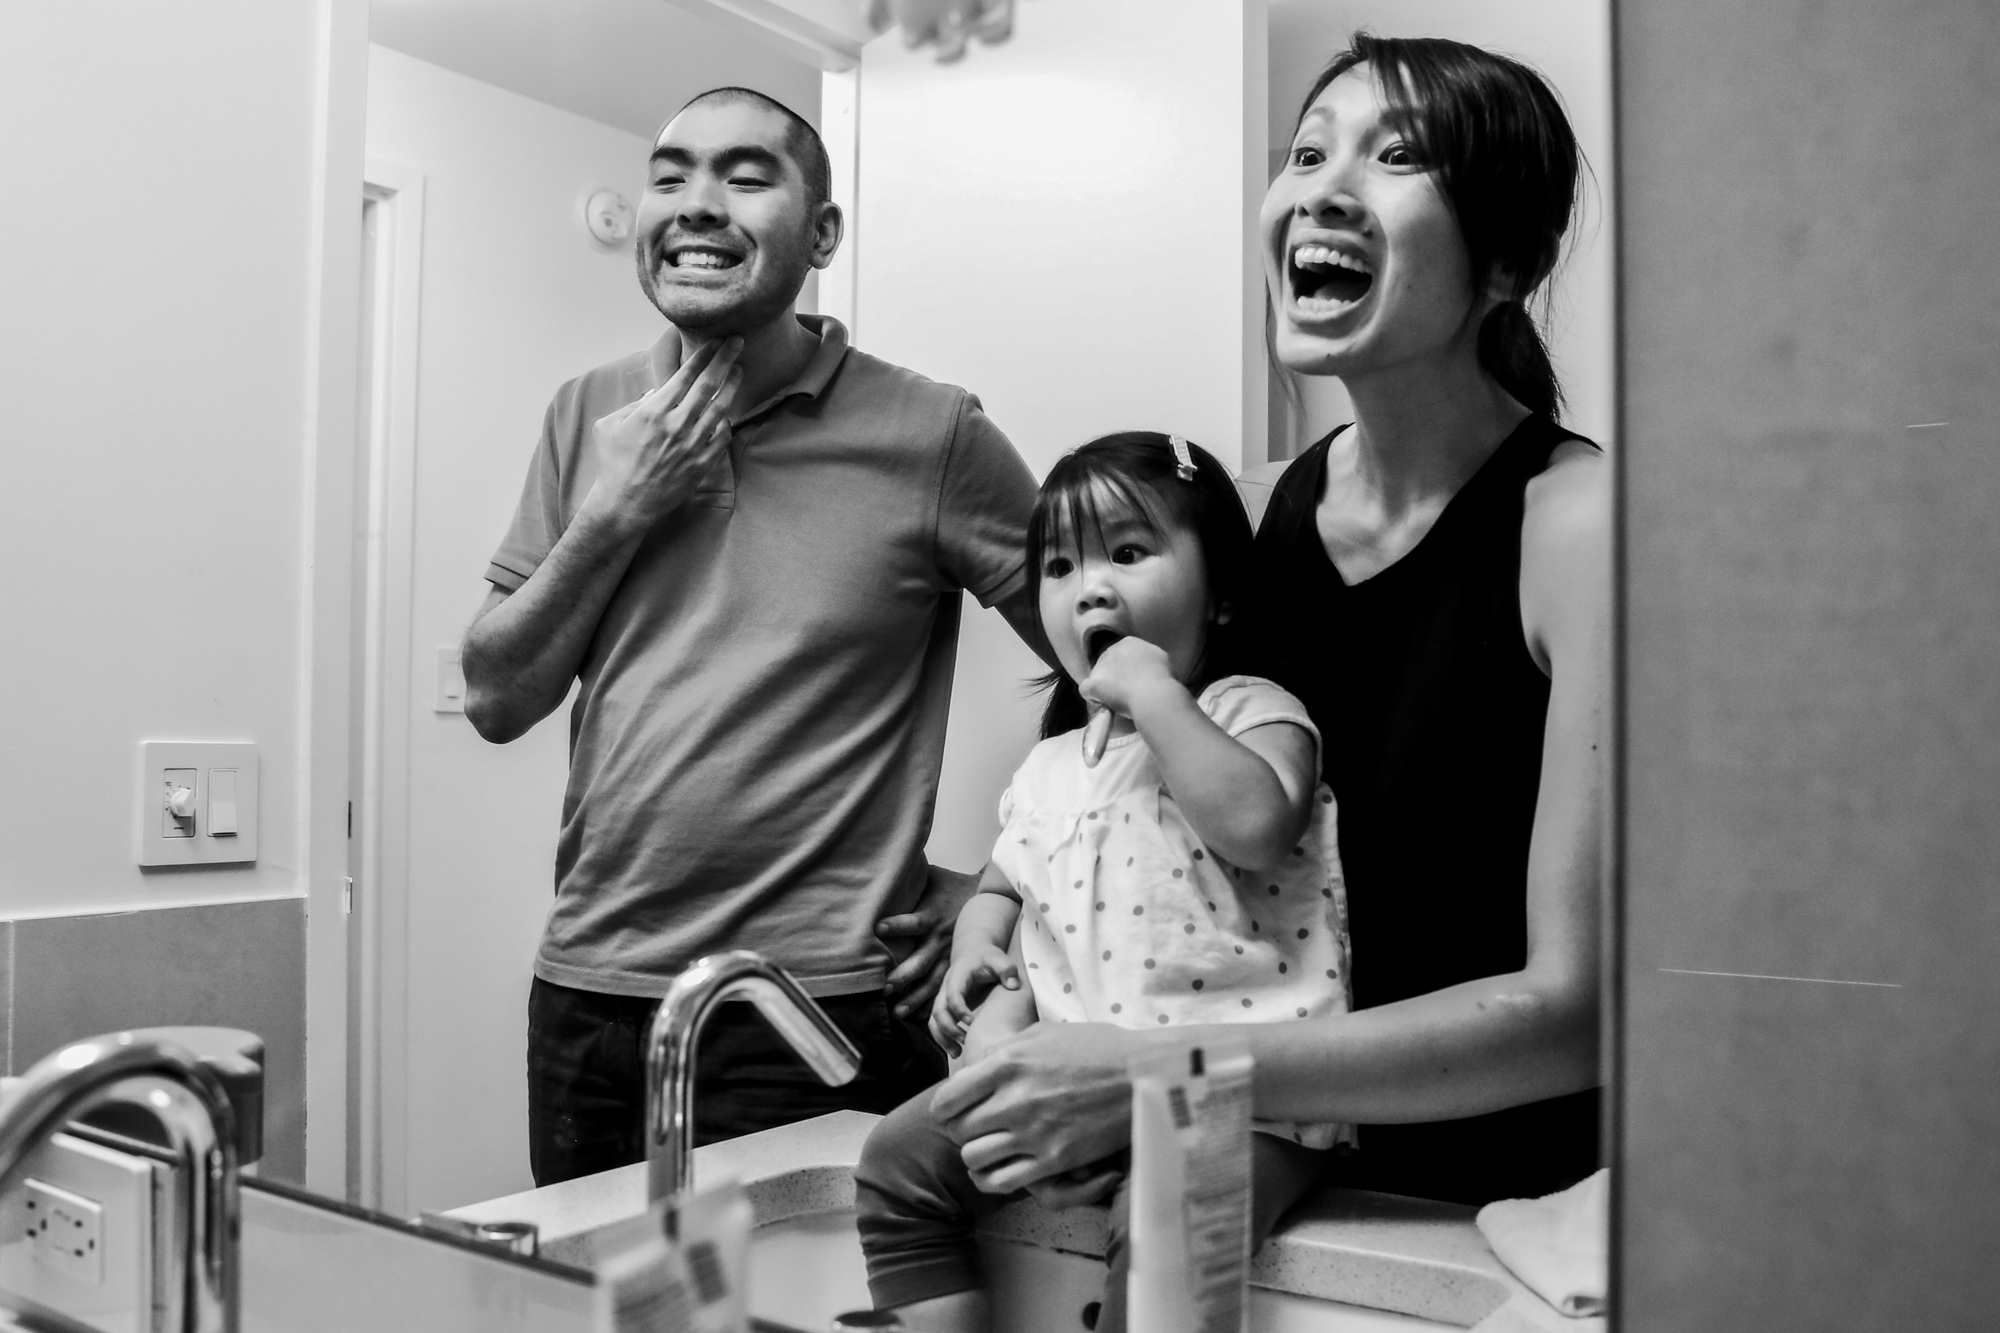 Man and woman make silly faces in the mirror while girl brushes teeth